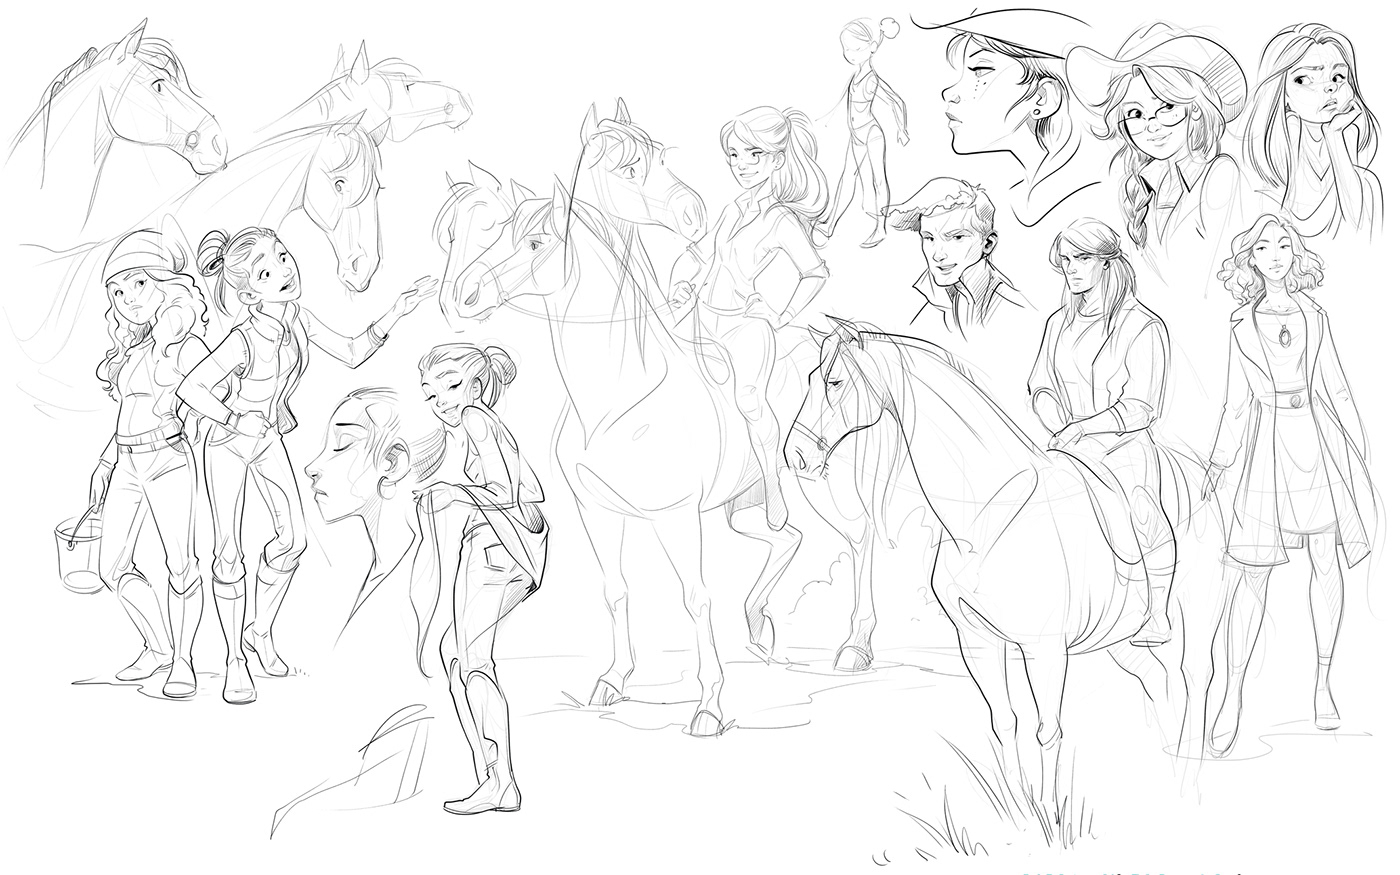 Character design ,woman,Expression,sketch,hand drawn,sketchbook,people,horses,equine,animals